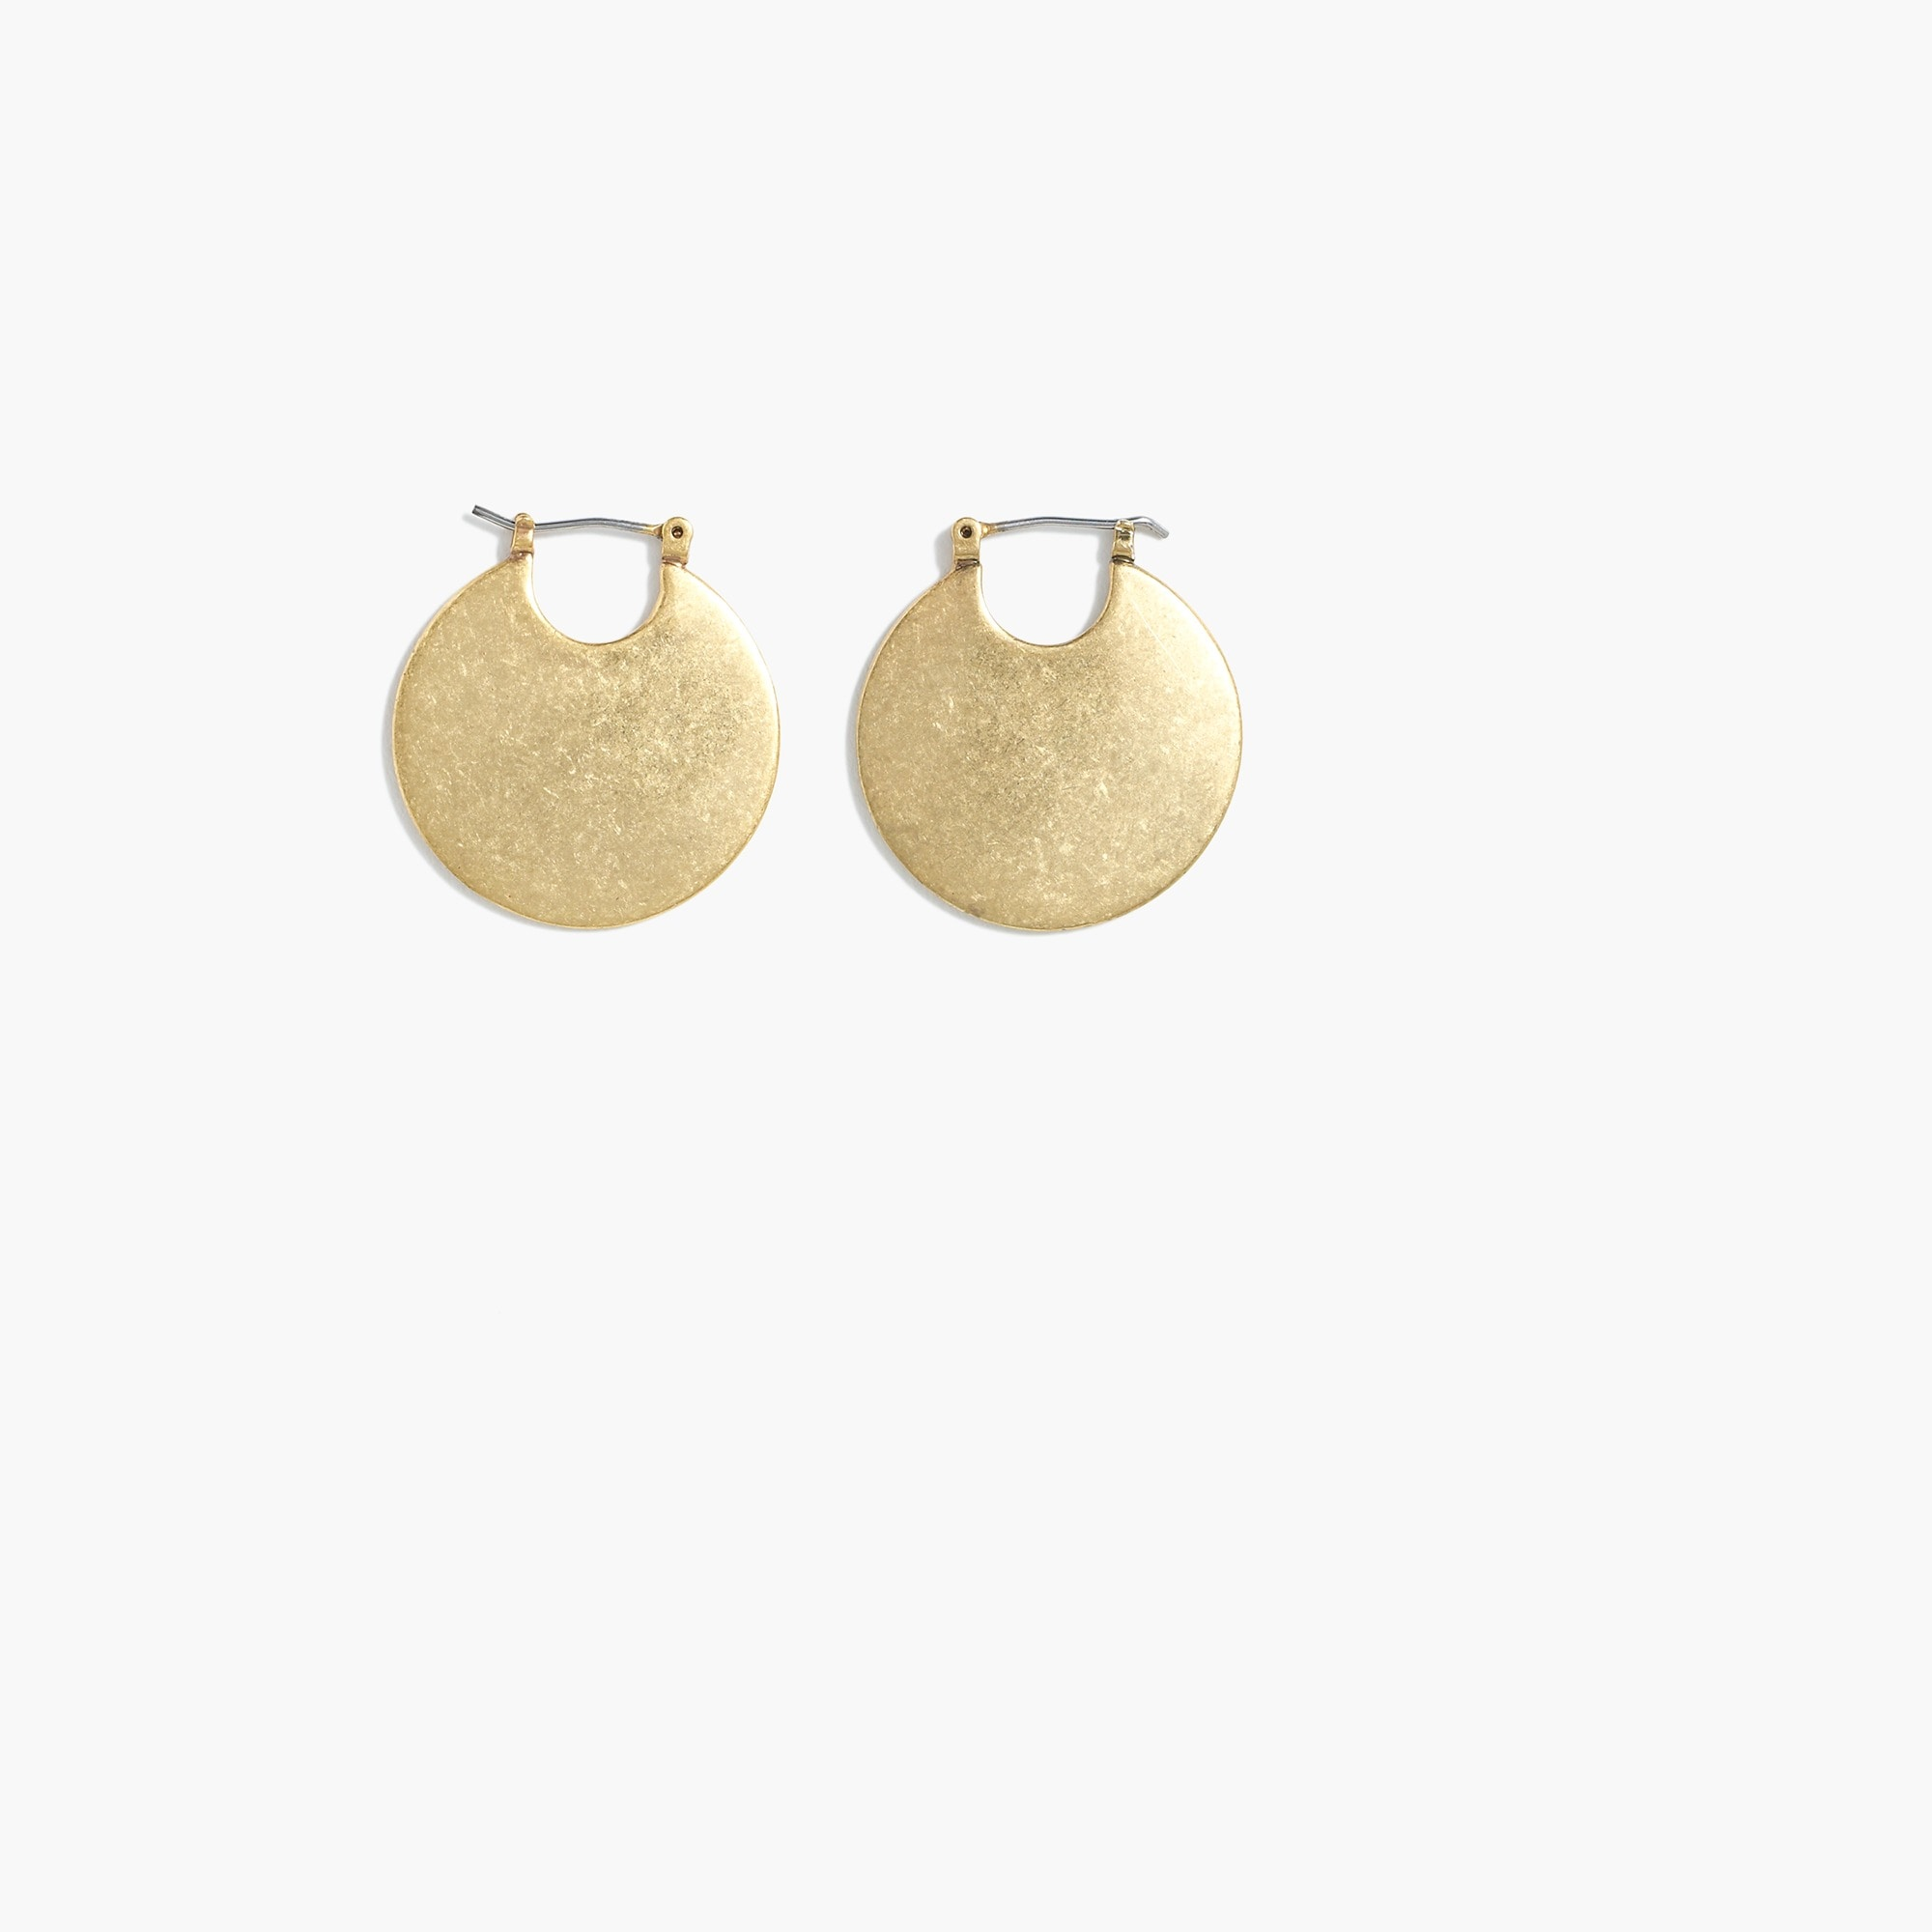 round disk earrings : women's earrings